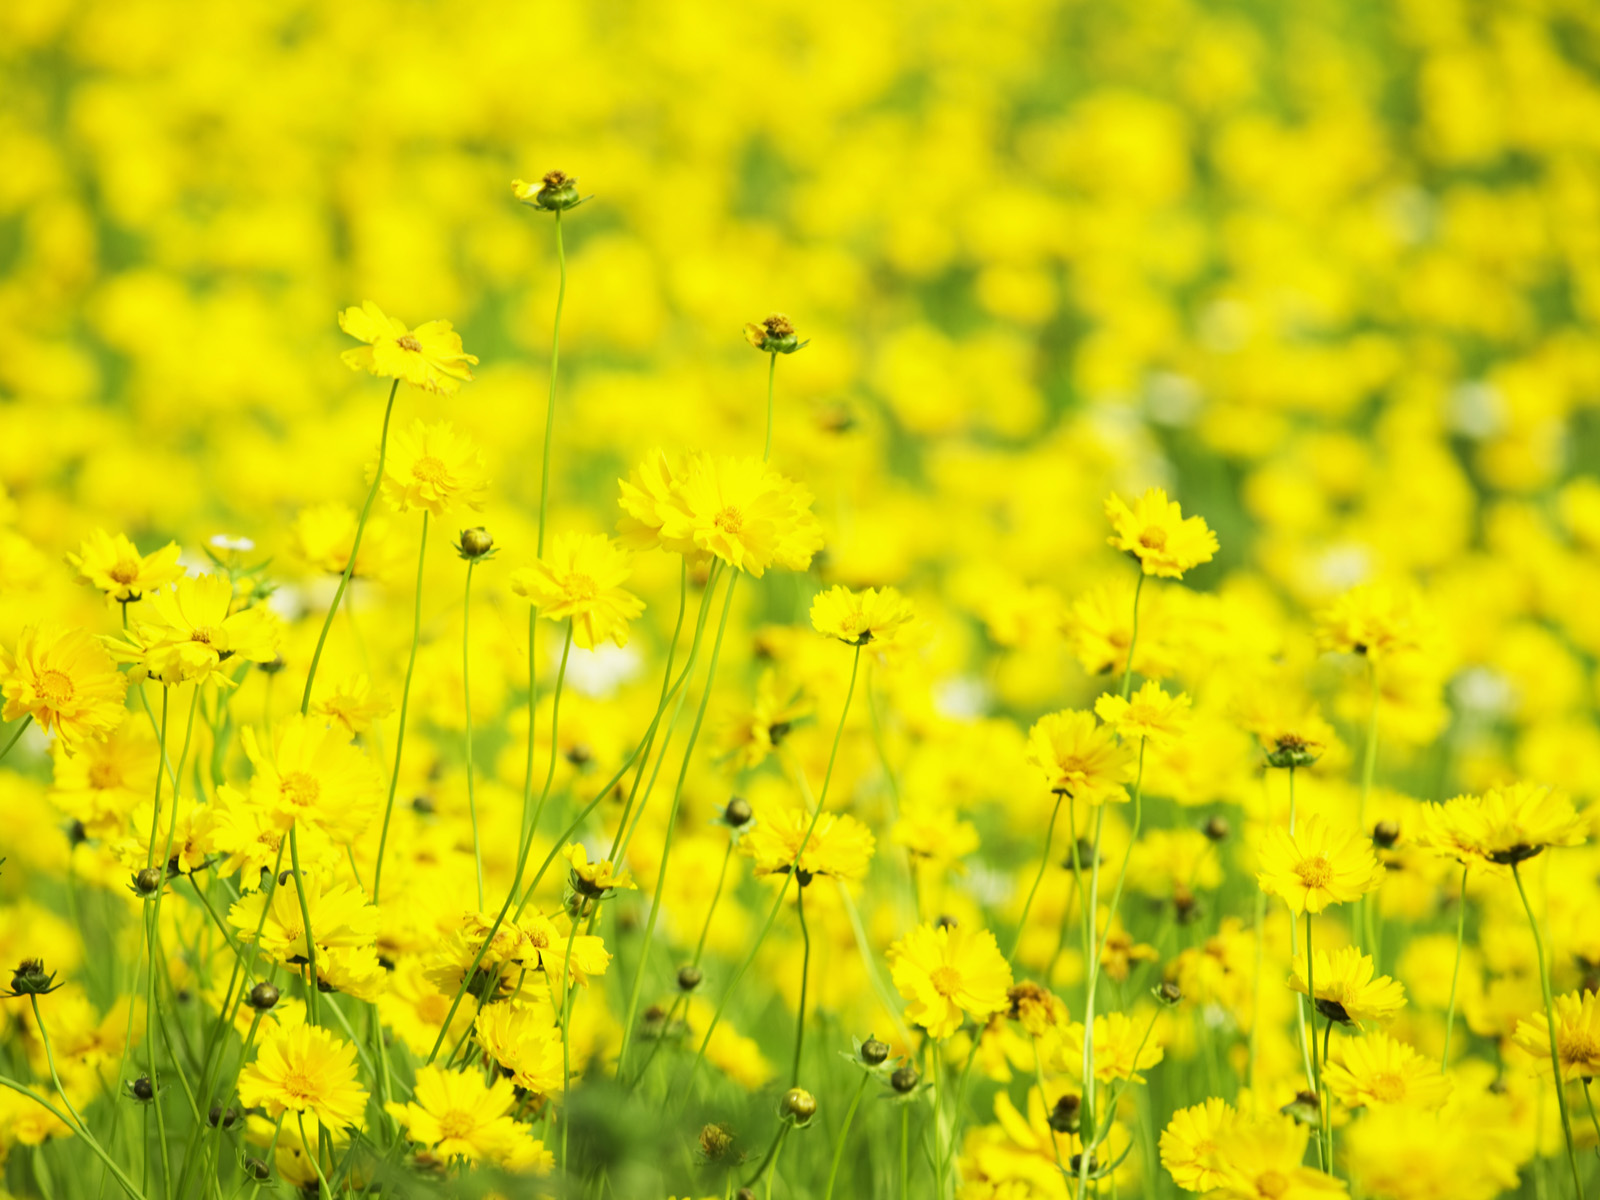 click to free download the wallpaper--Flowers and Nature, Yellow Flowers Smiling Under the Sky, Miracle of Nature 1600X1200 free wallpaper download